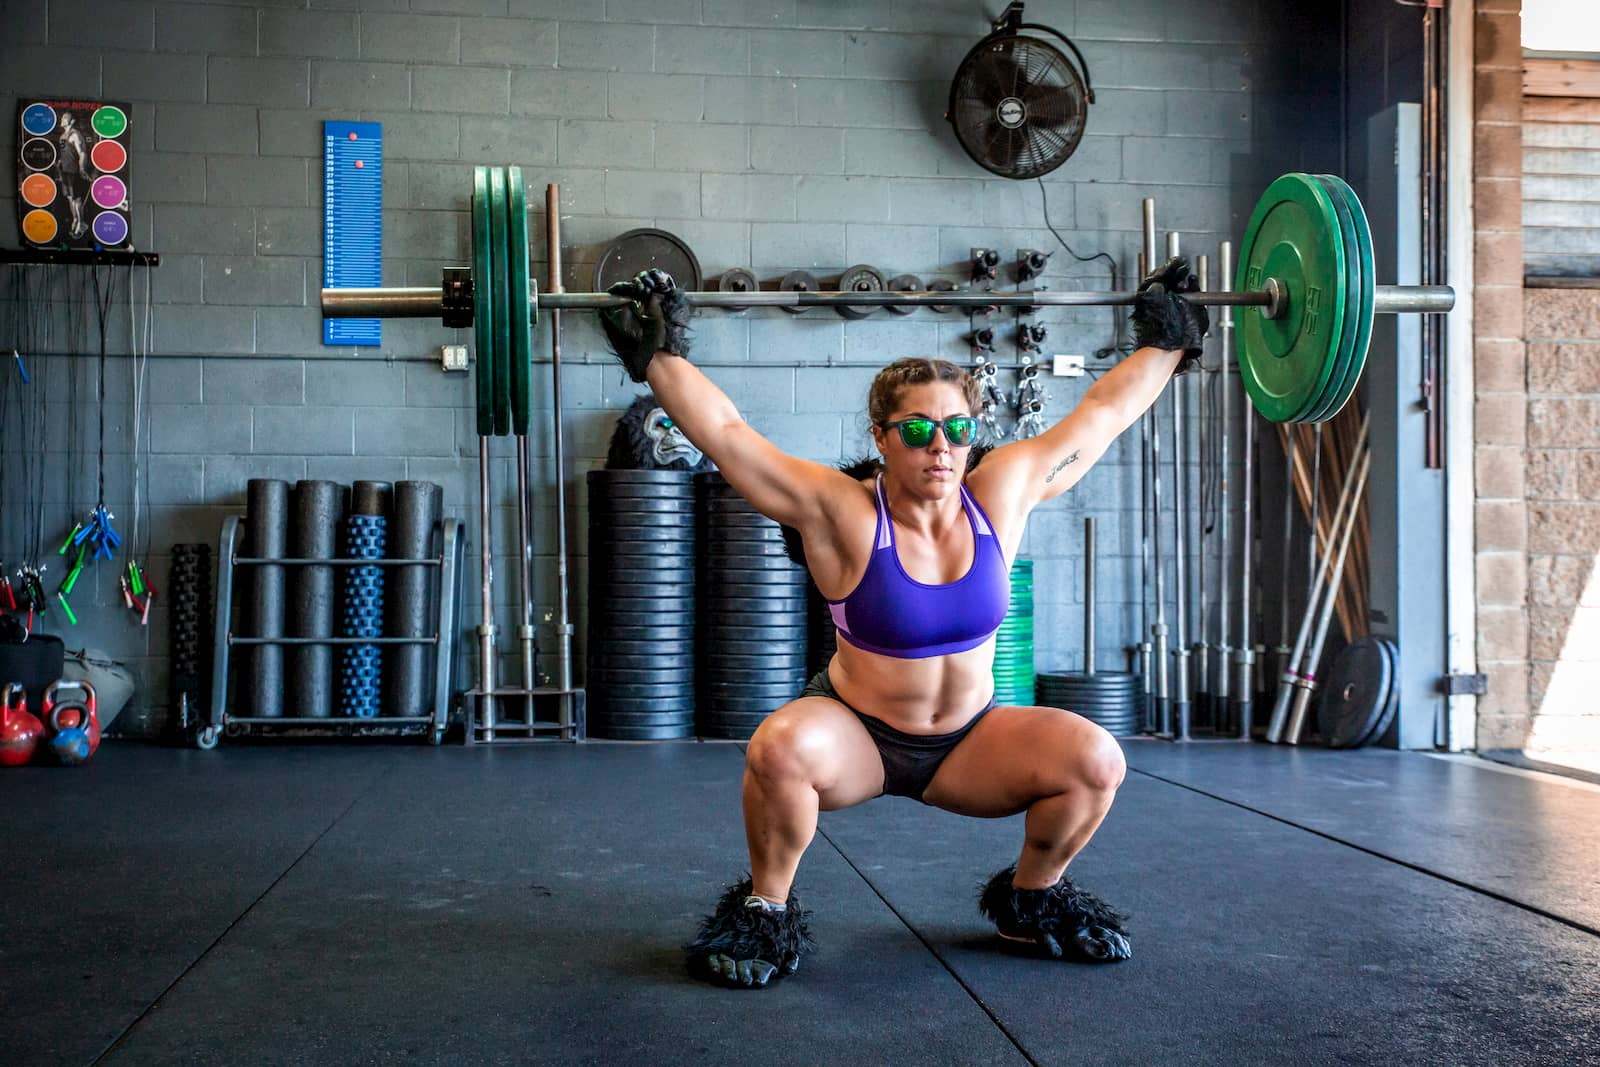 Woman with gorilla gloves squats in goodr gray sunglasses